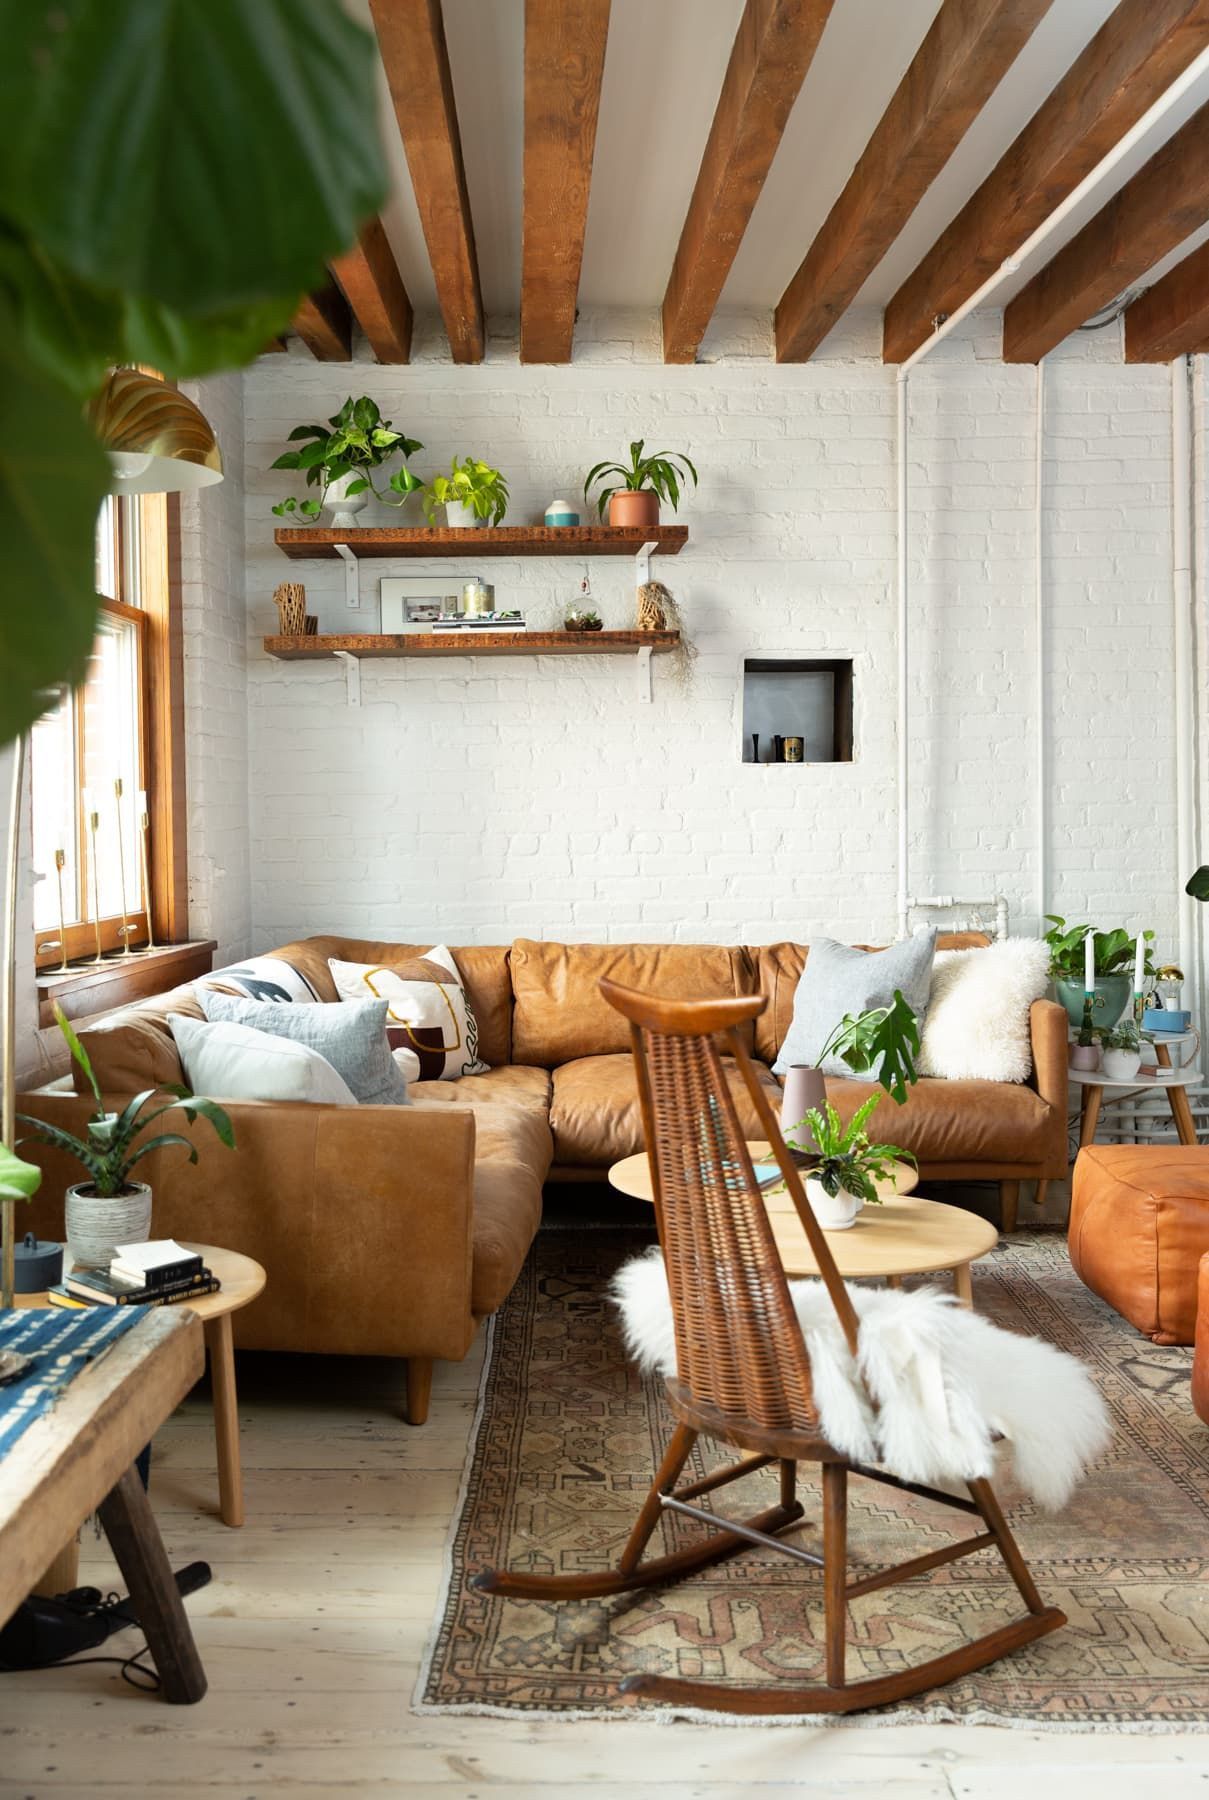 A Scandinavian Inspired Nyc Loft Was Designed For Connection And Community Nyc Loft Furniture Home